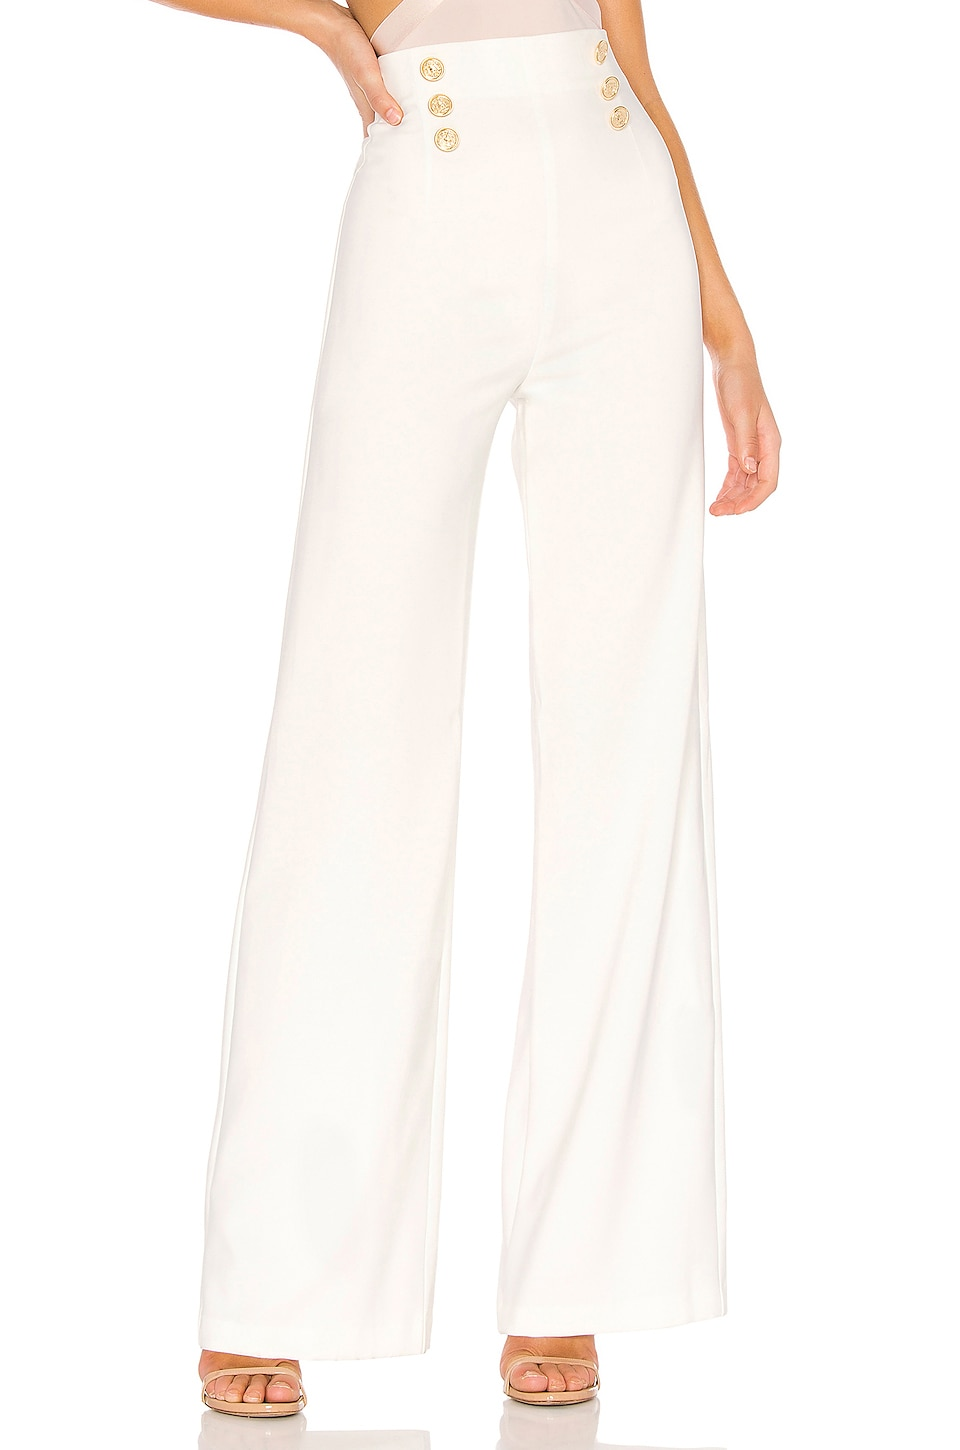 Nookie Milano Pant in White